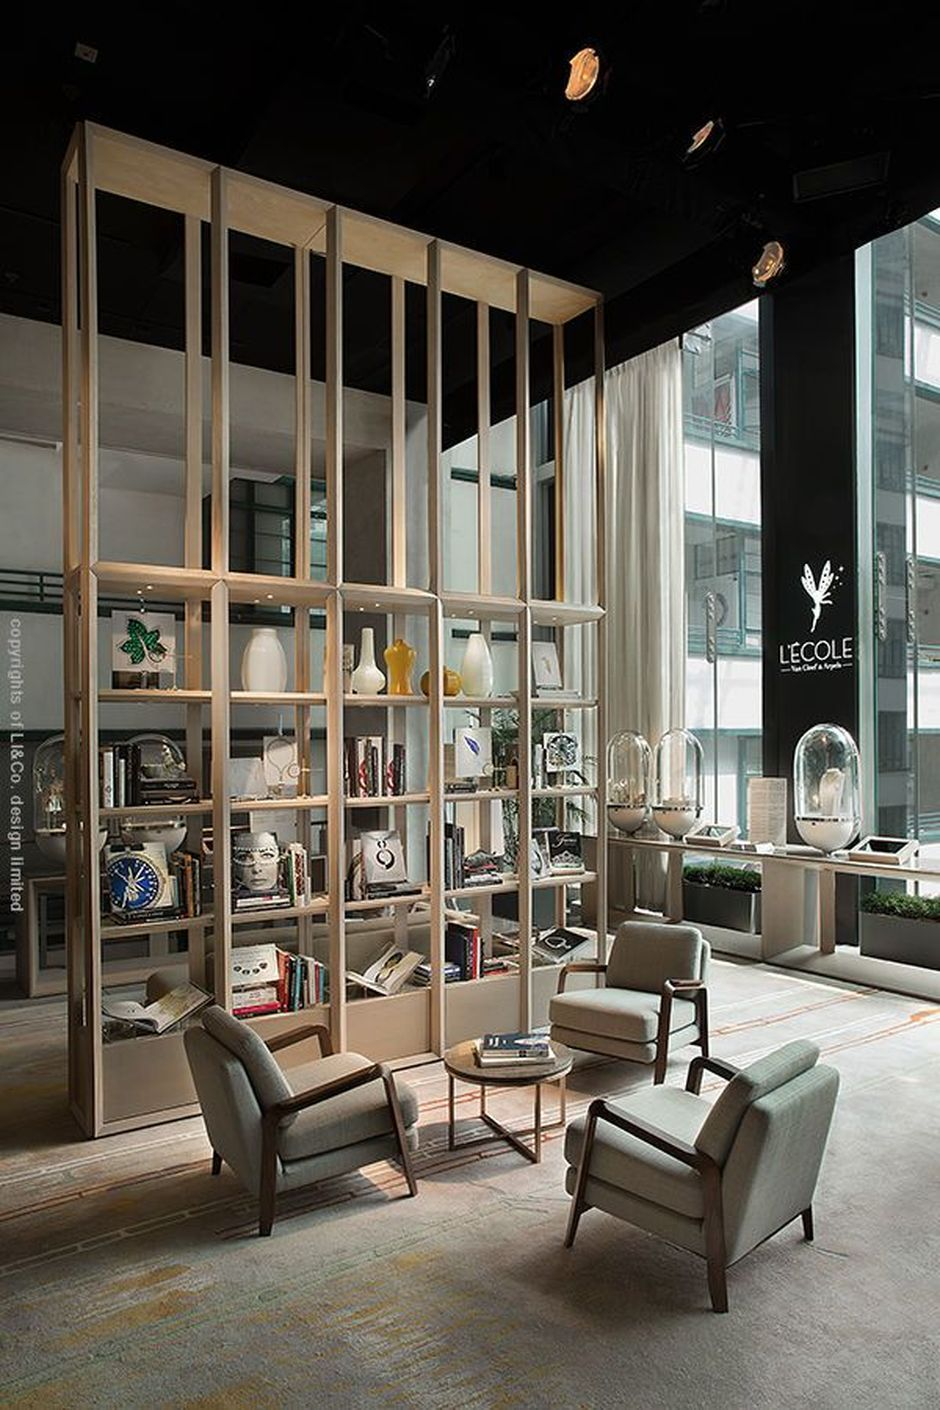 80 incredible room dividers and separators with selves ideas 39 rh pinterest com